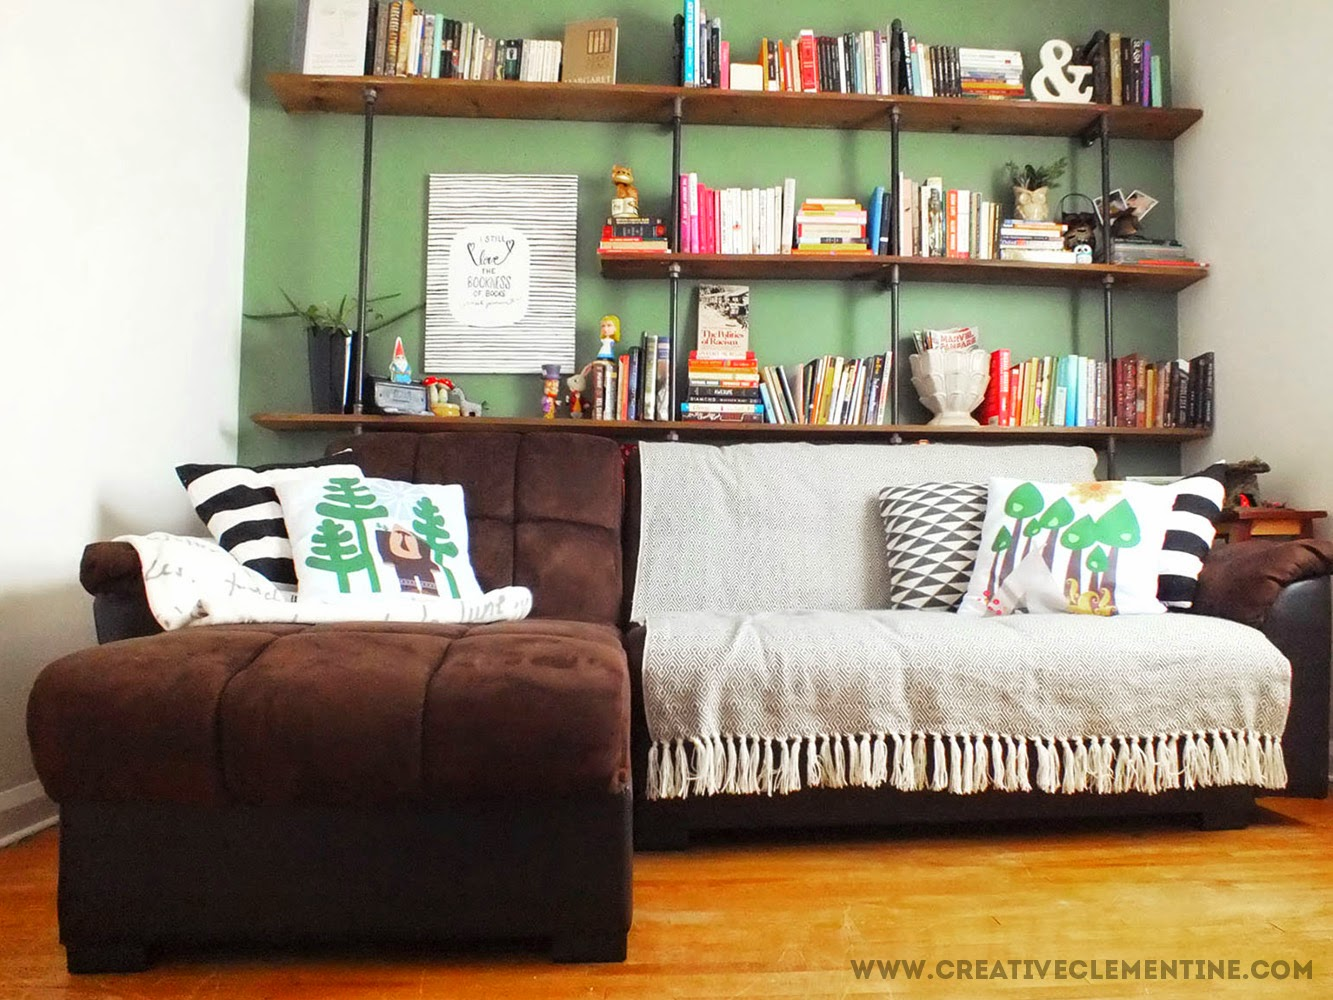 Guest + Reading Room Makeover via Creative Clementine.com: After!